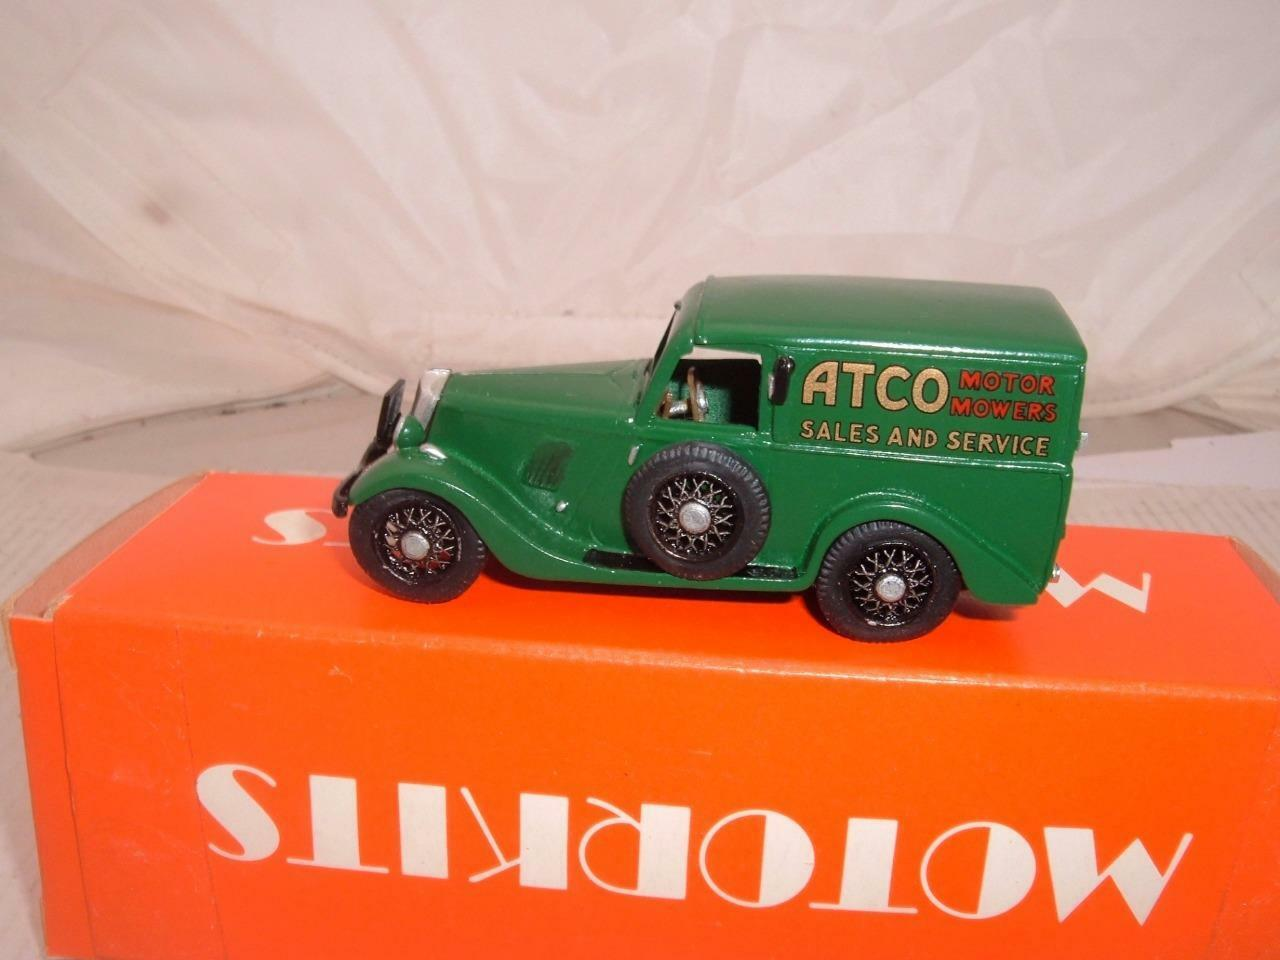 ATCO MOTOR MOWERS SALES & SERVICE FORD Y WHITE METAL STATIC MODEL 1 43 BOXED